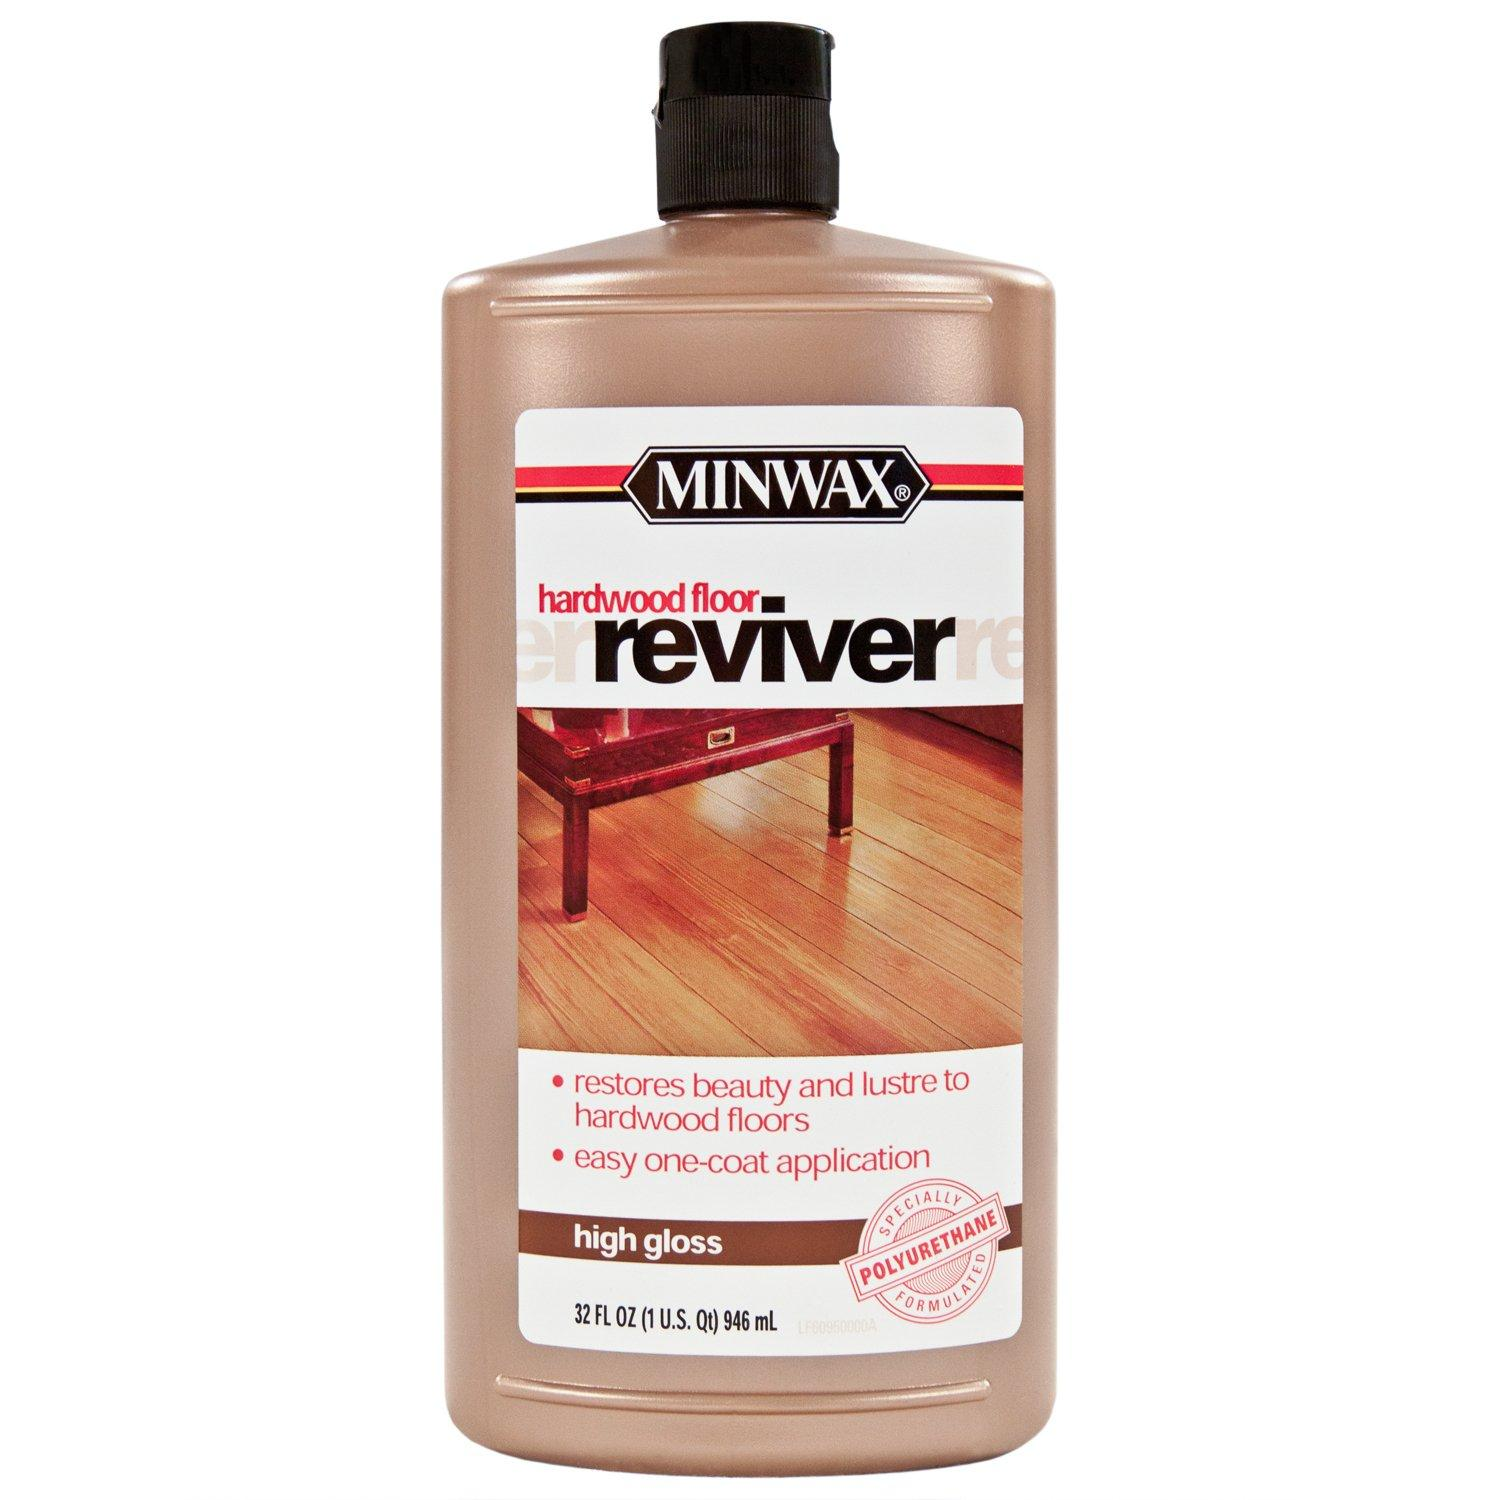 Minwax High Gloss Hardwood Floor Reviver 954507434 Floor And